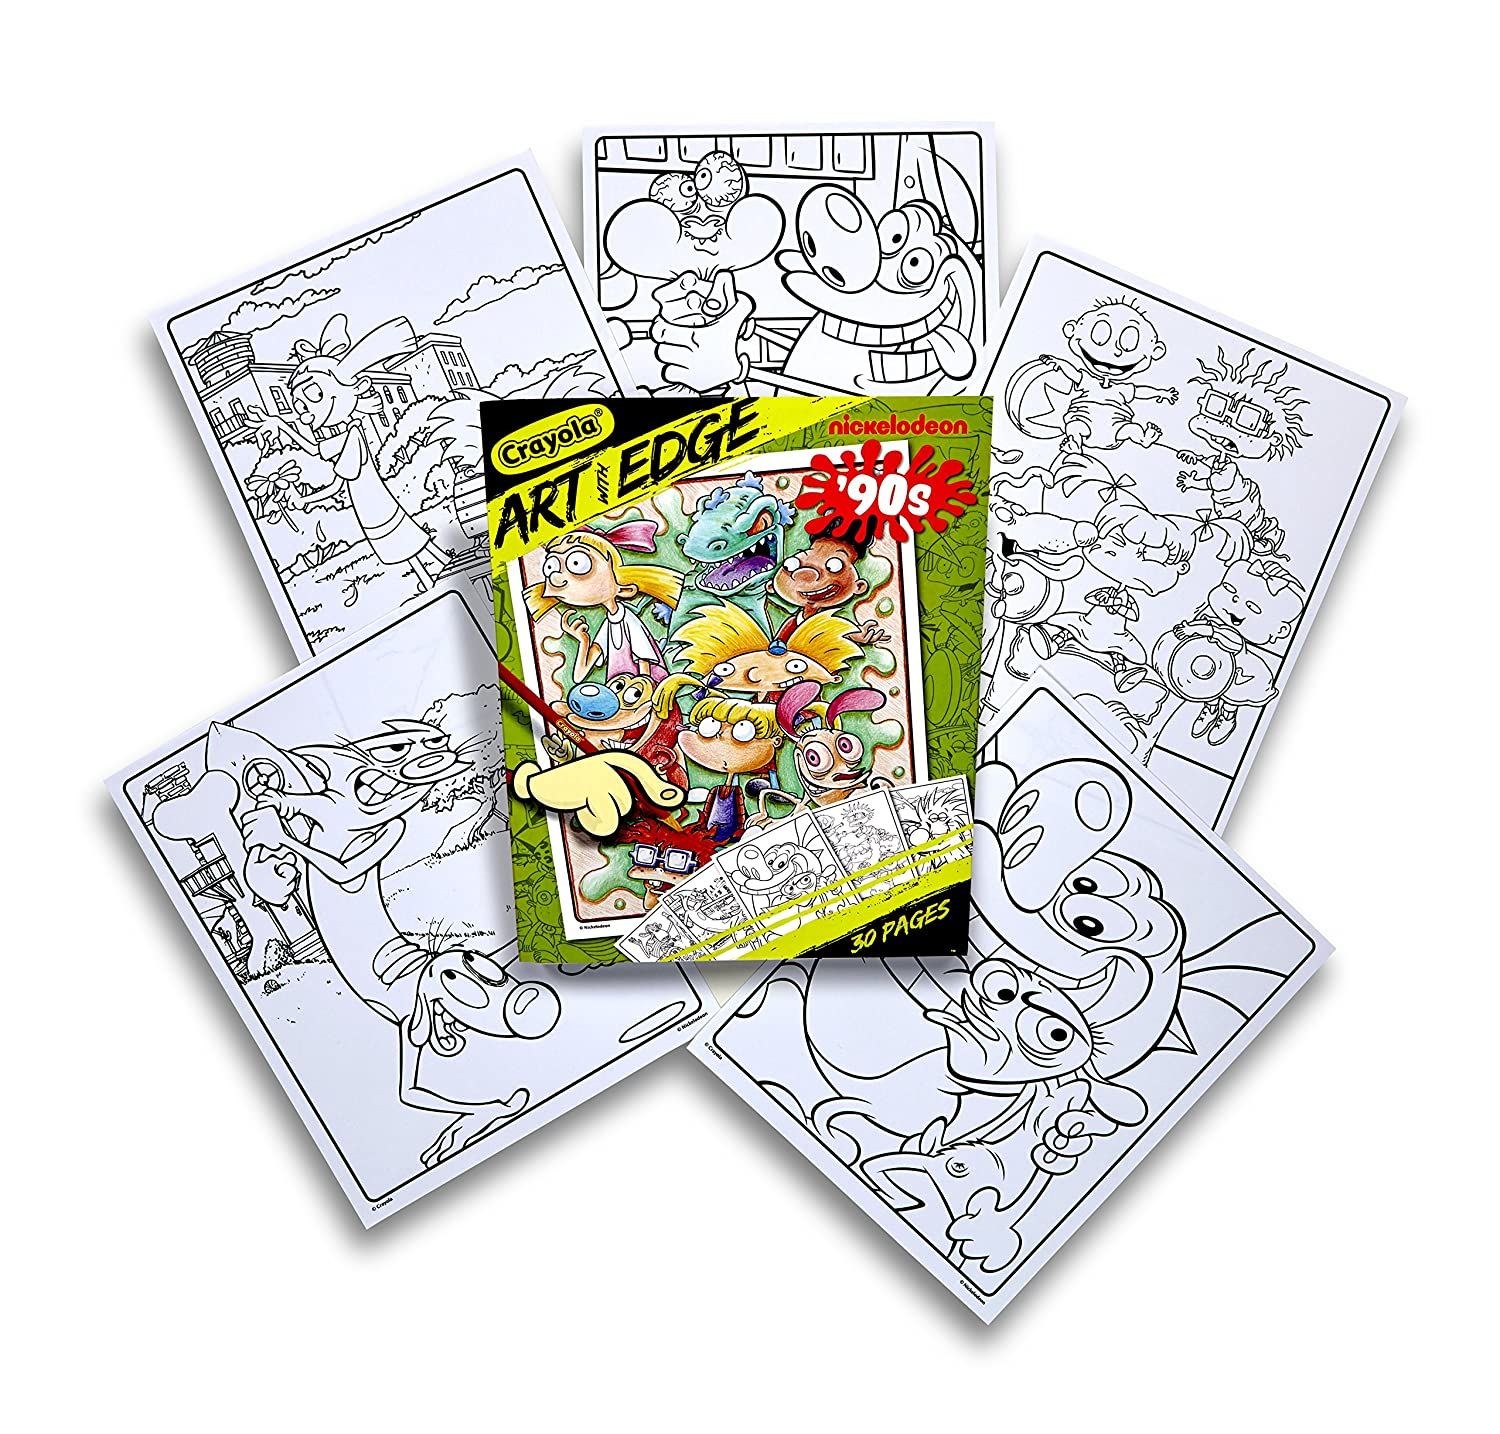 Amazon.com: Crayola Art with Edge Coloring Pages Nickelodeon Toy ...